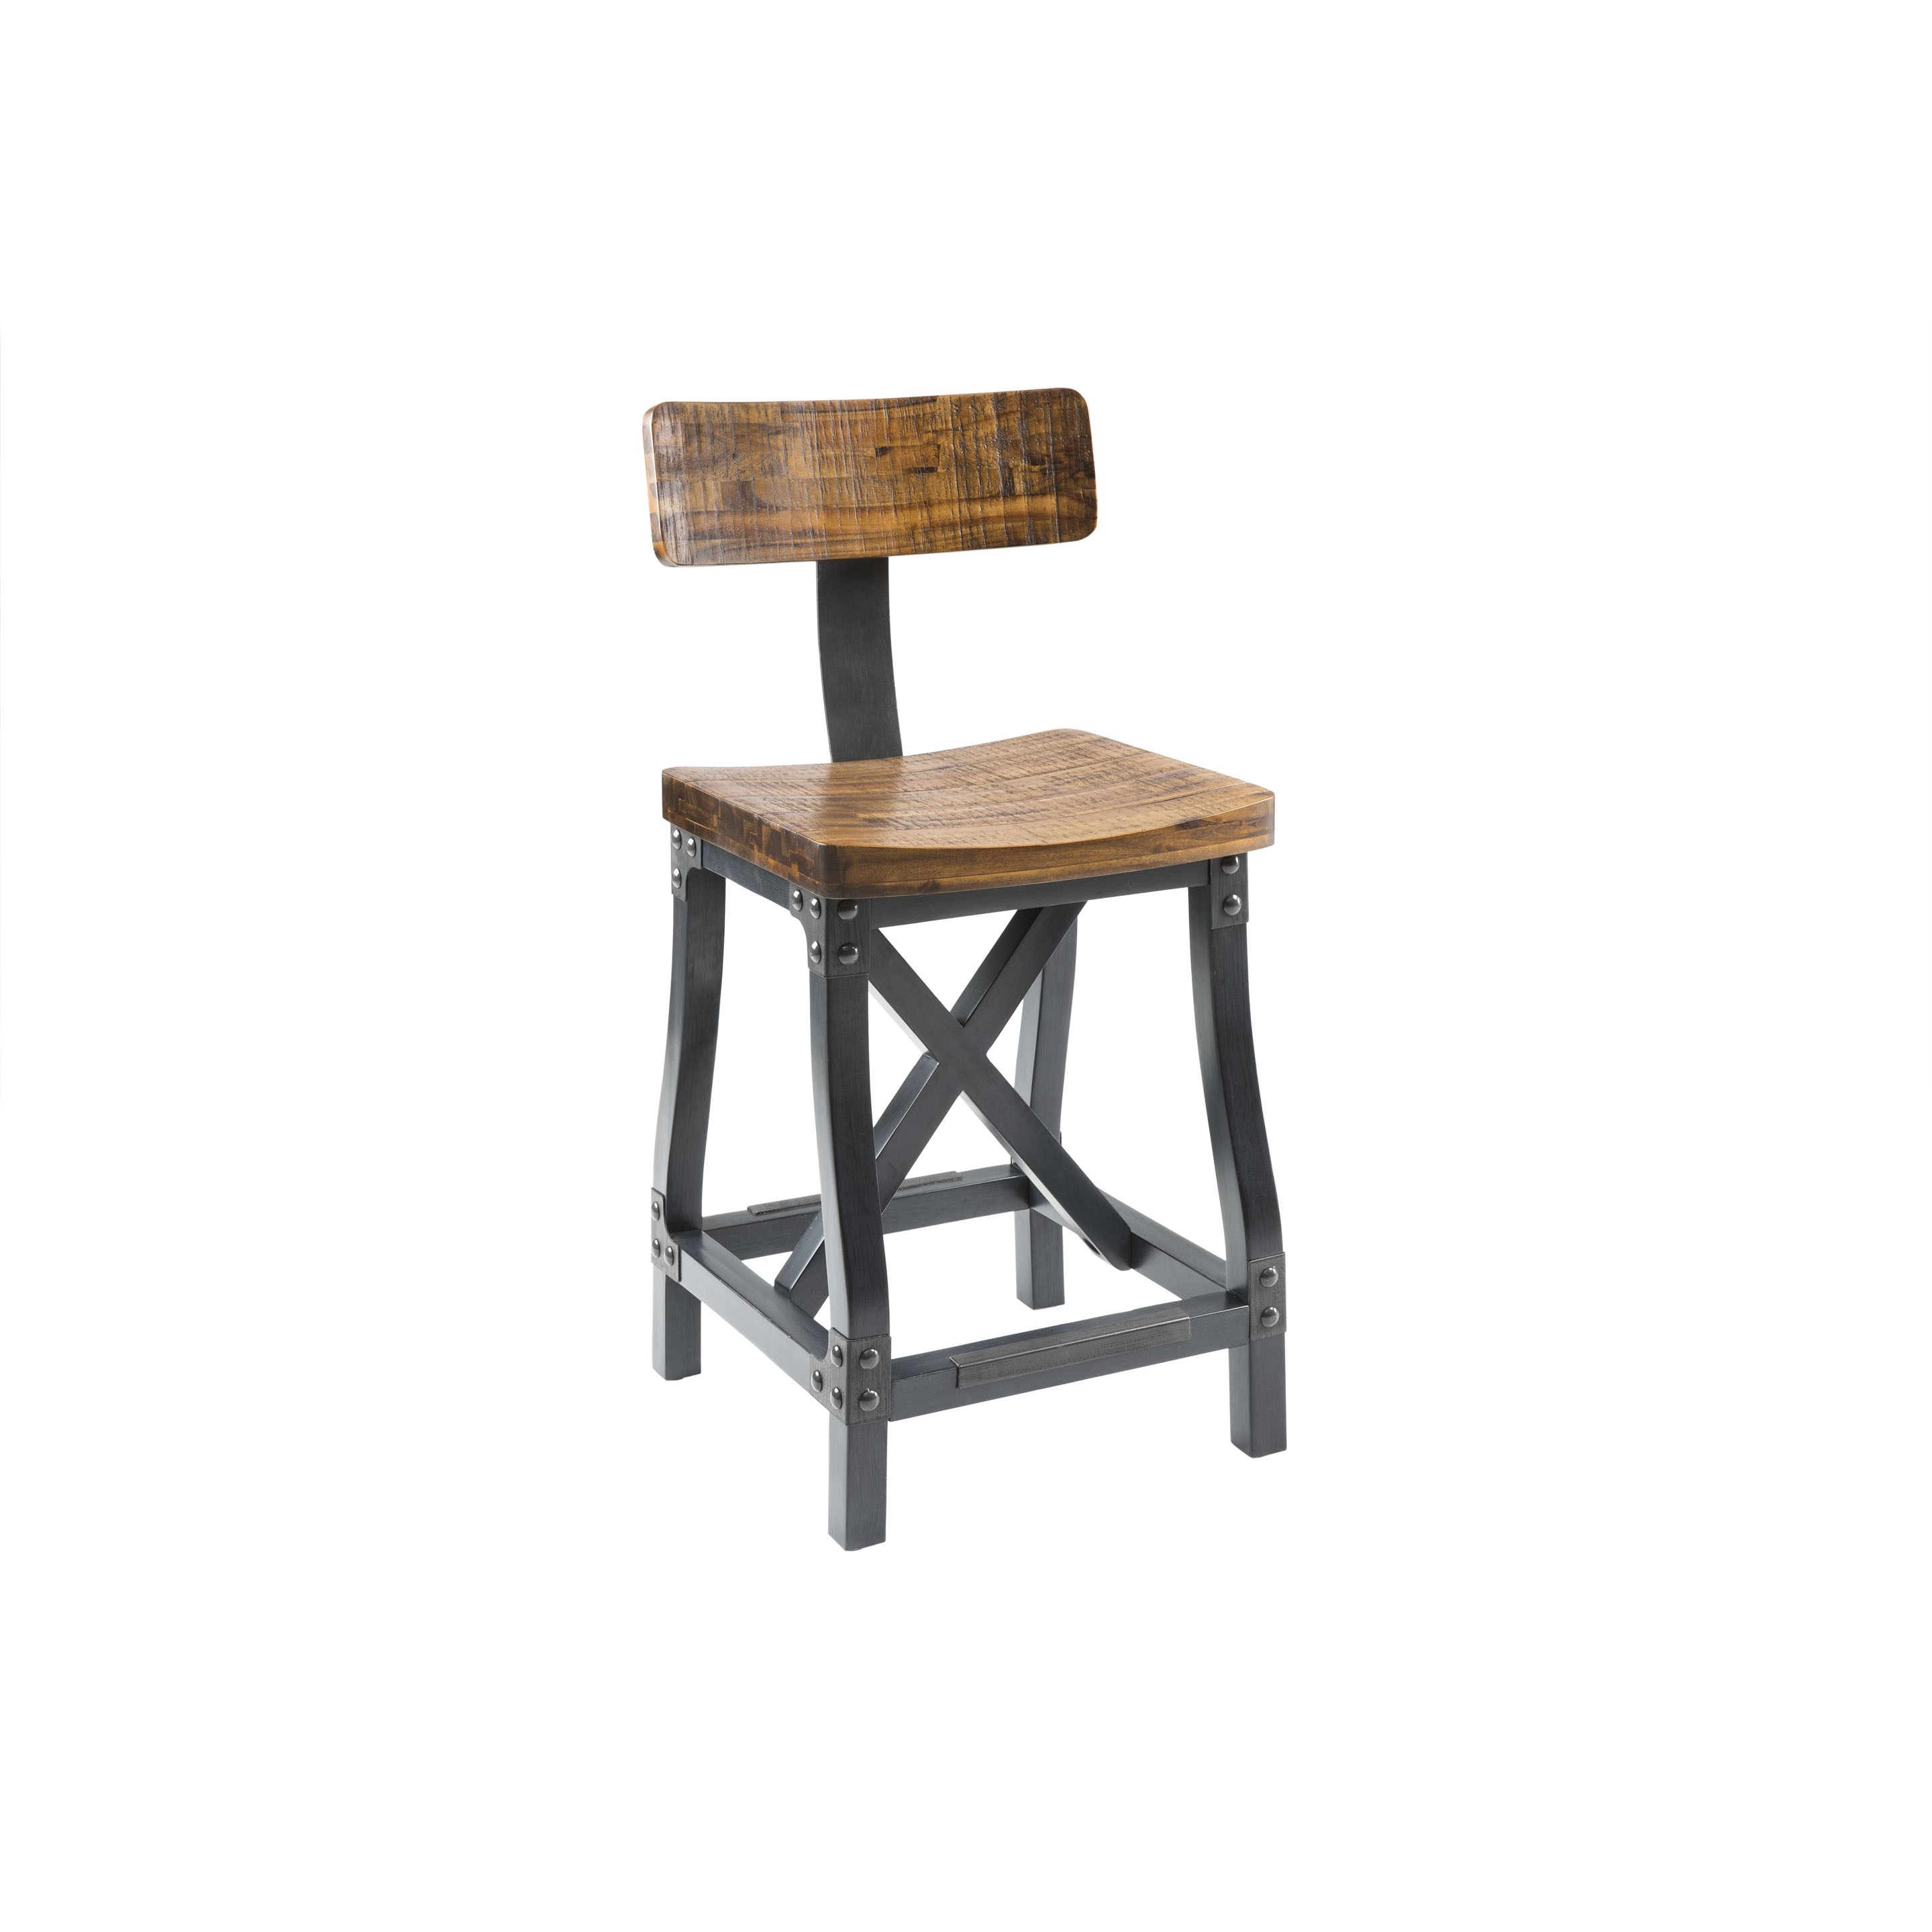 Cheyenne counter height bar stool w back rustic counter for Counter height bar stools